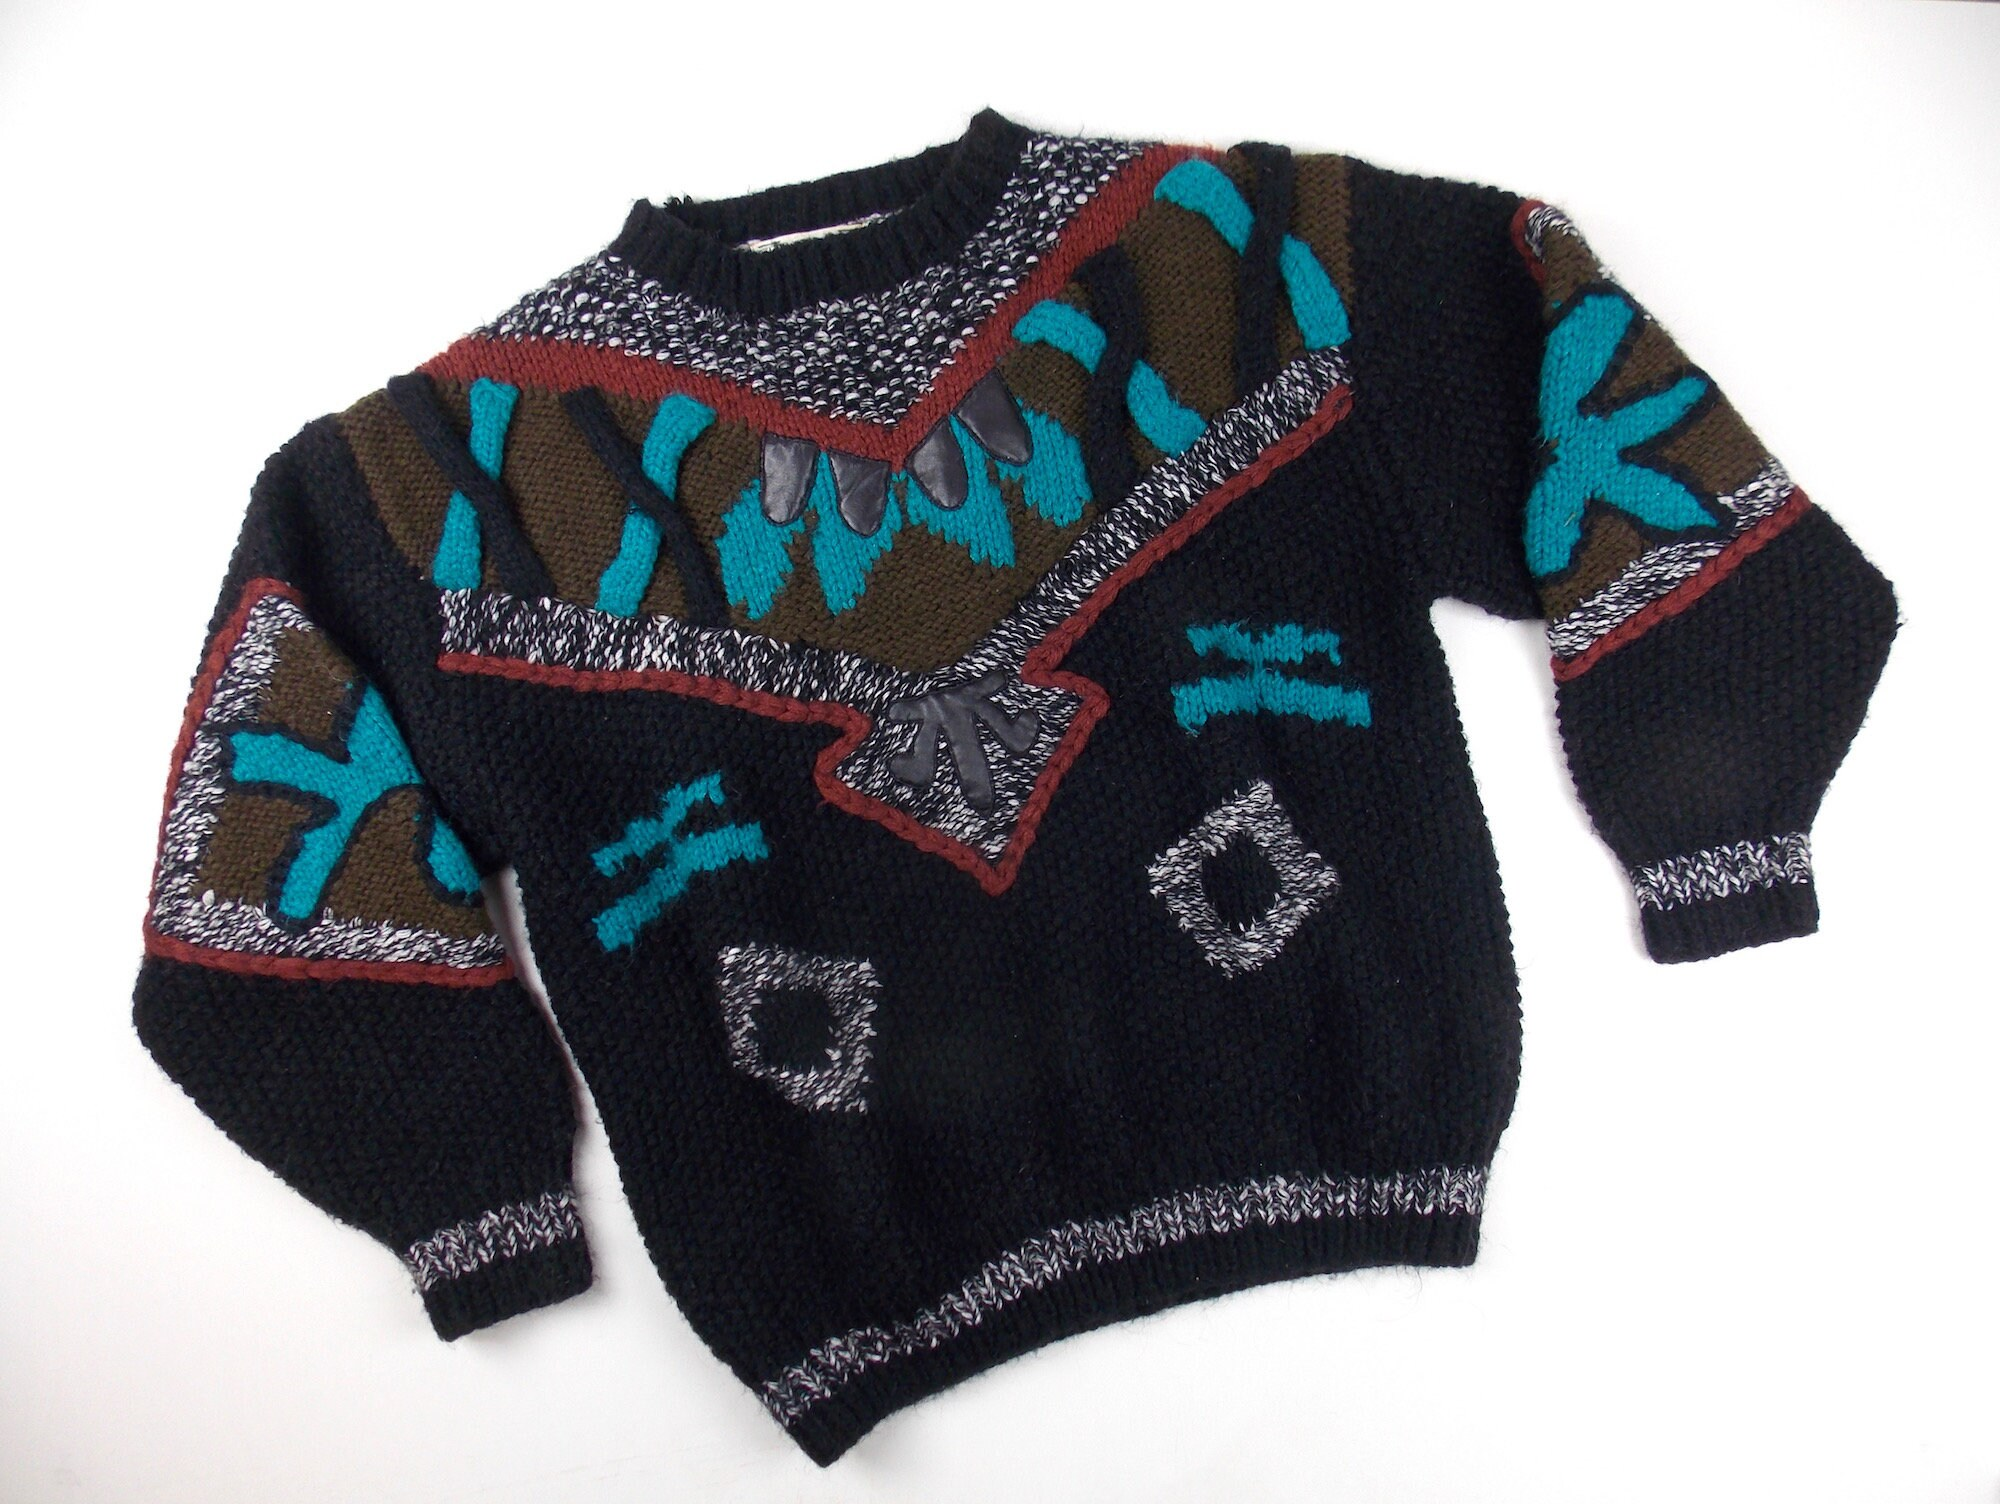 80s Sweatshirts, Sweaters, Vests | Women 1980s Bulky Knit Sweater Mens Unisex Large New Wave Mohair Blend $48.00 AT vintagedancer.com